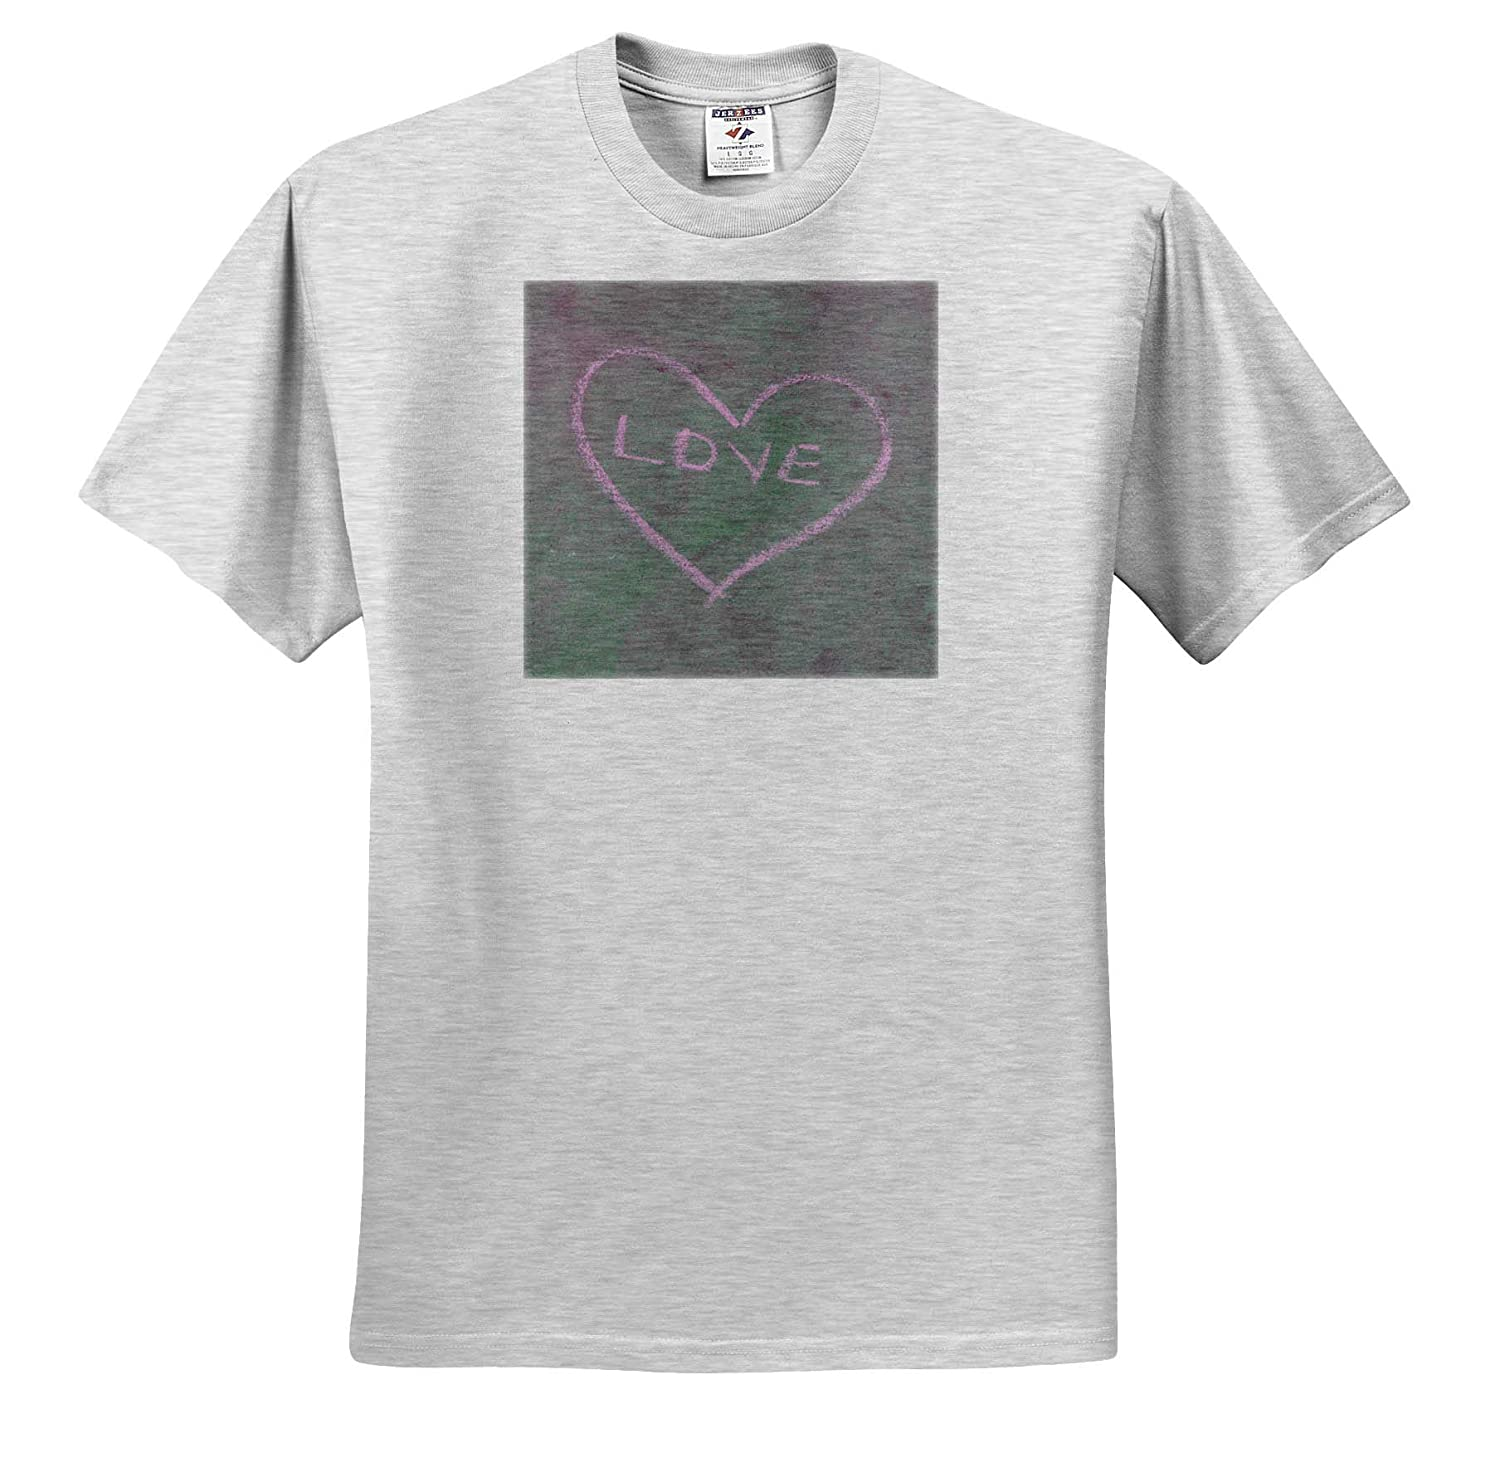 ts/_317895 Adult T-Shirt XL 3dRose Jos Fauxtographee- Love A chalked Love in a Heart on a Sidewalk